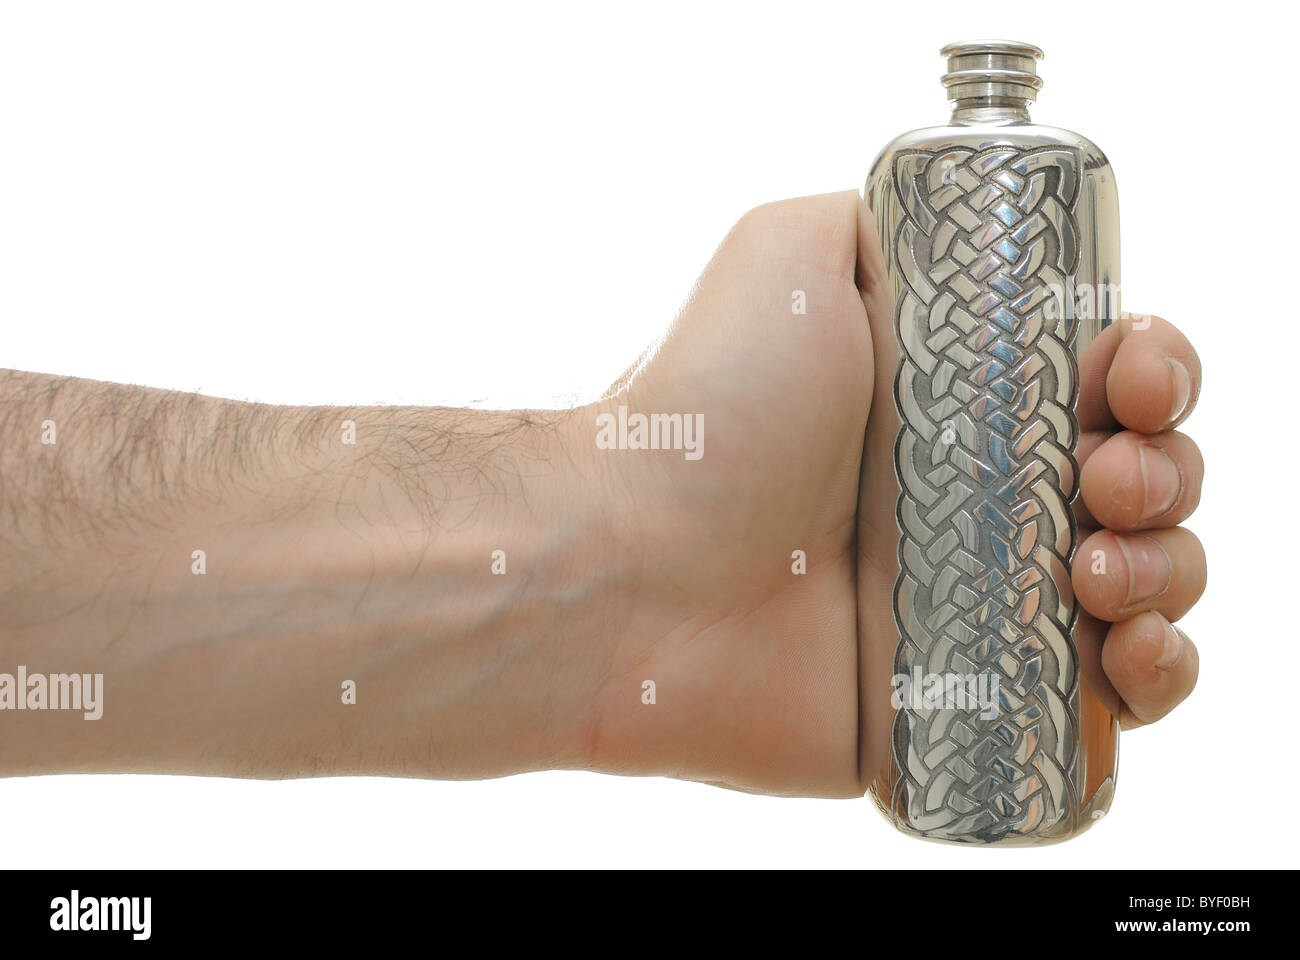 Hand holding a flask isolated on white. - Stock Image